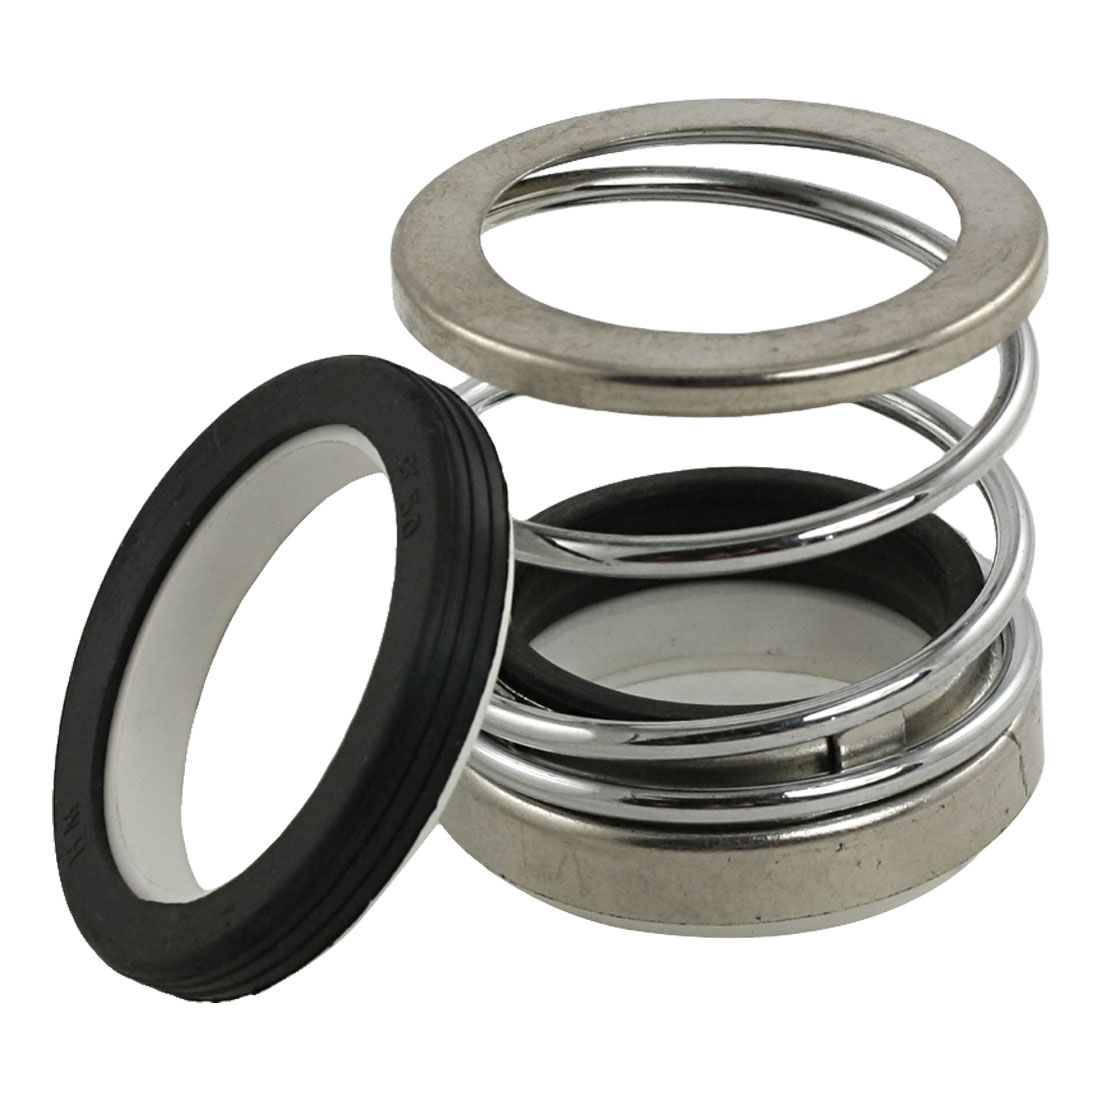 35mm-1-3-8-Inner-Diameter-Rubber-Bellows-Pump-Mechanical-Seal